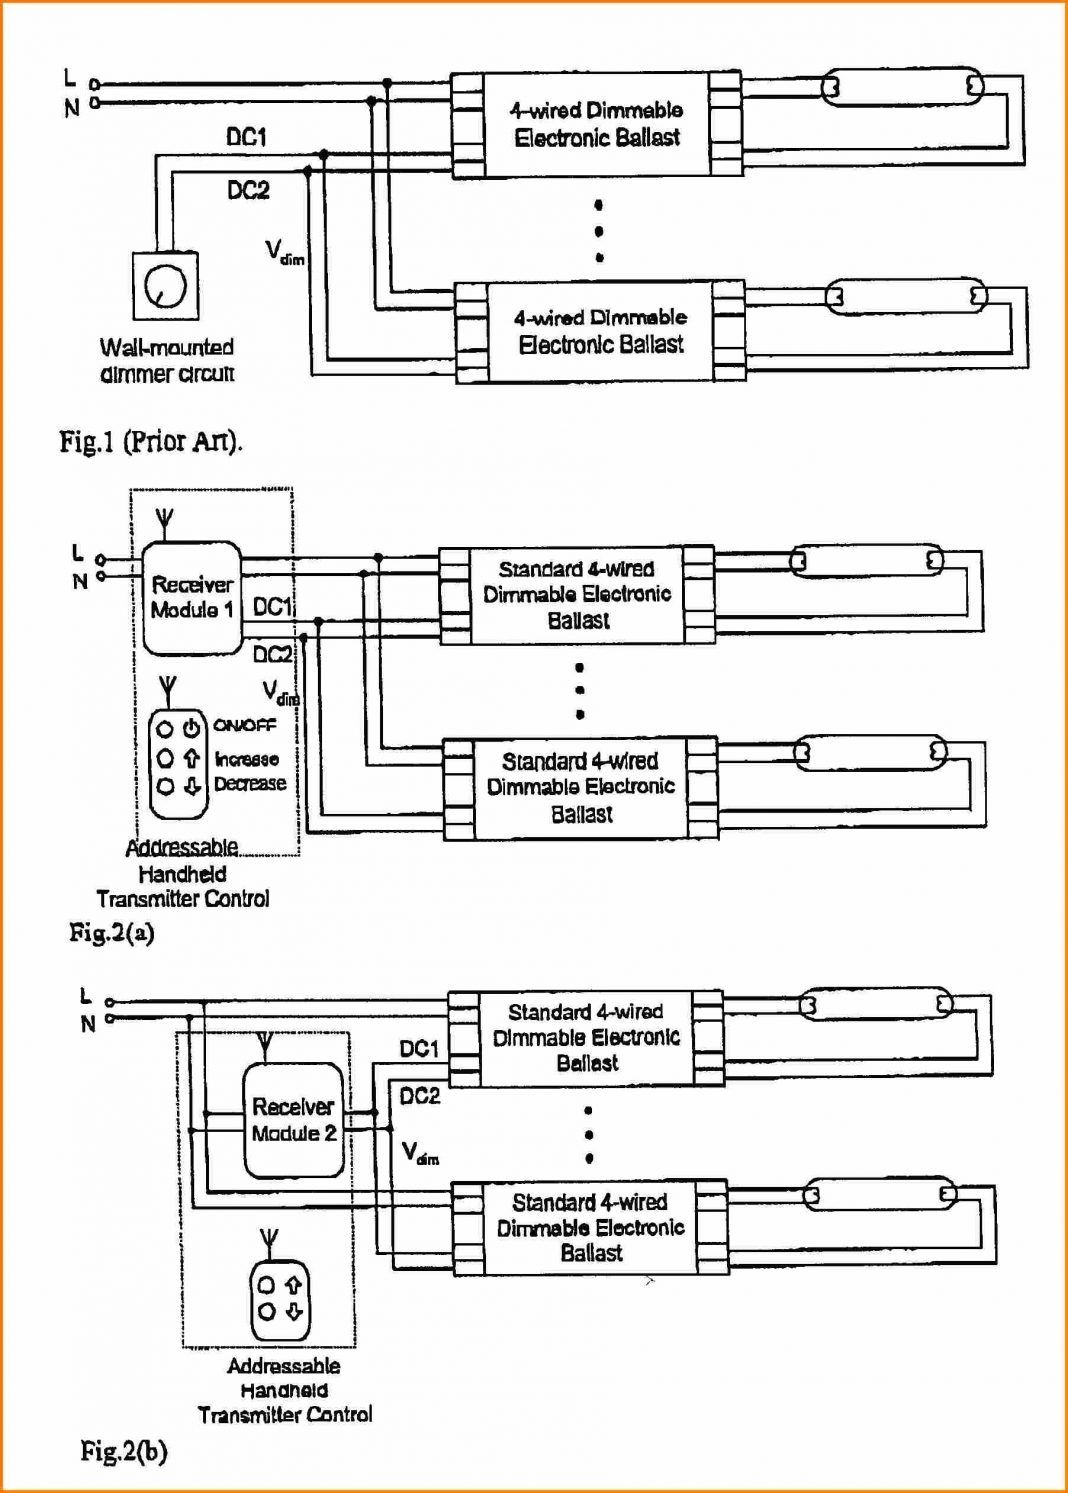 17 Awesome Led Fluorescent Tube Wiring Diagram Design Ideas Bacamajalah Led Fluorescent Tube Led Fluorescent Diagram Design